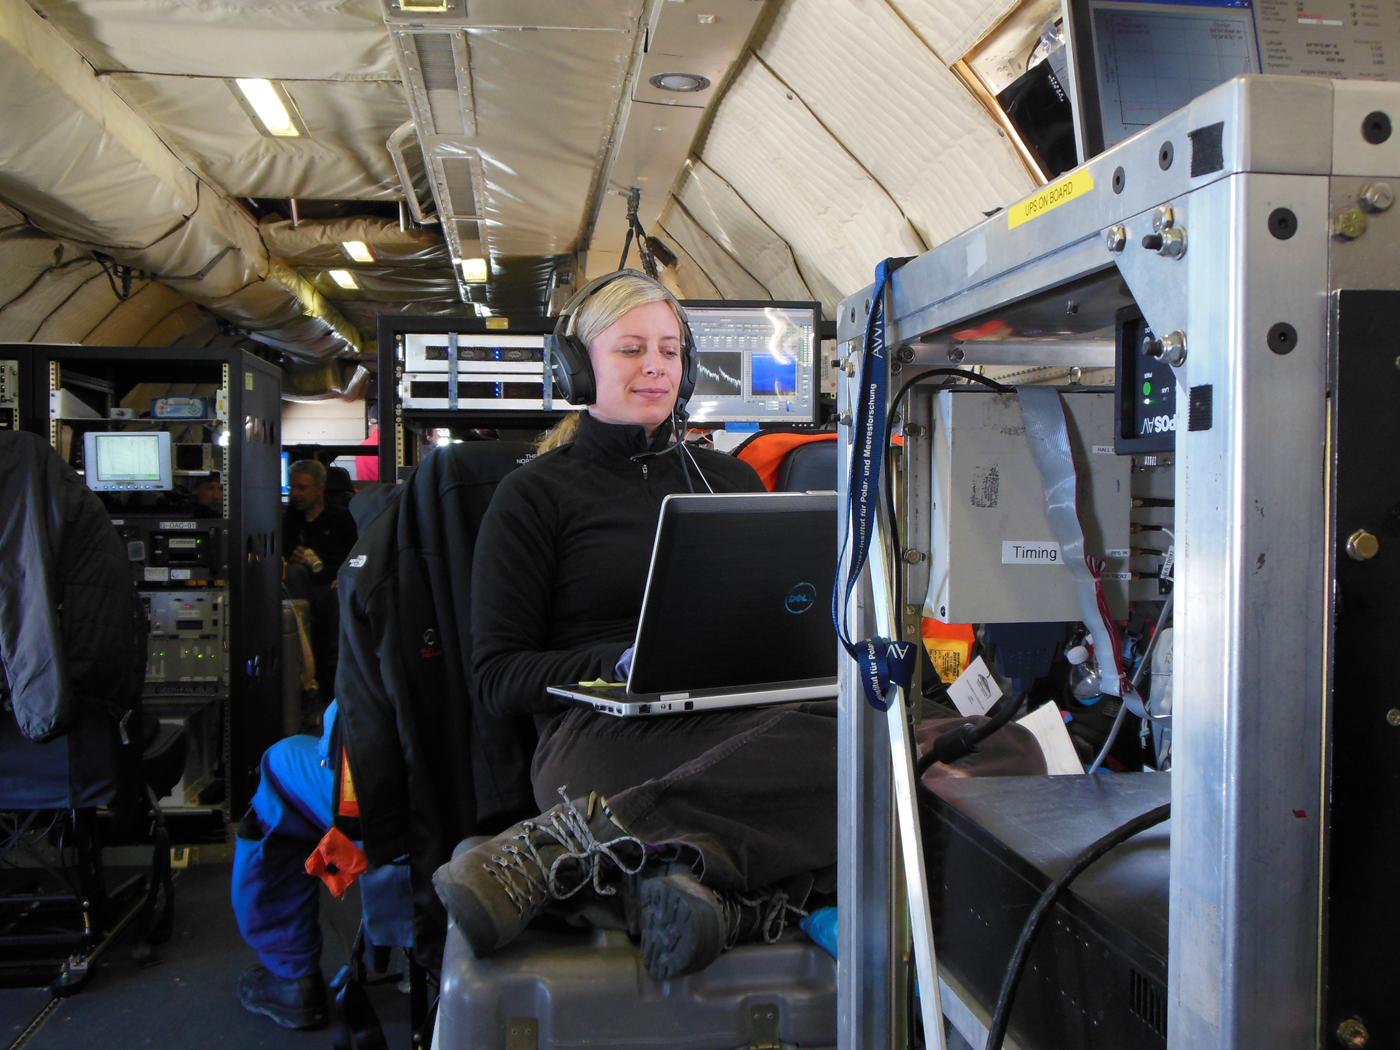 Christy Hansen sits on a toolbox while she working on the Operation IceBridge flight. She is surrounded by various scientific instruments.